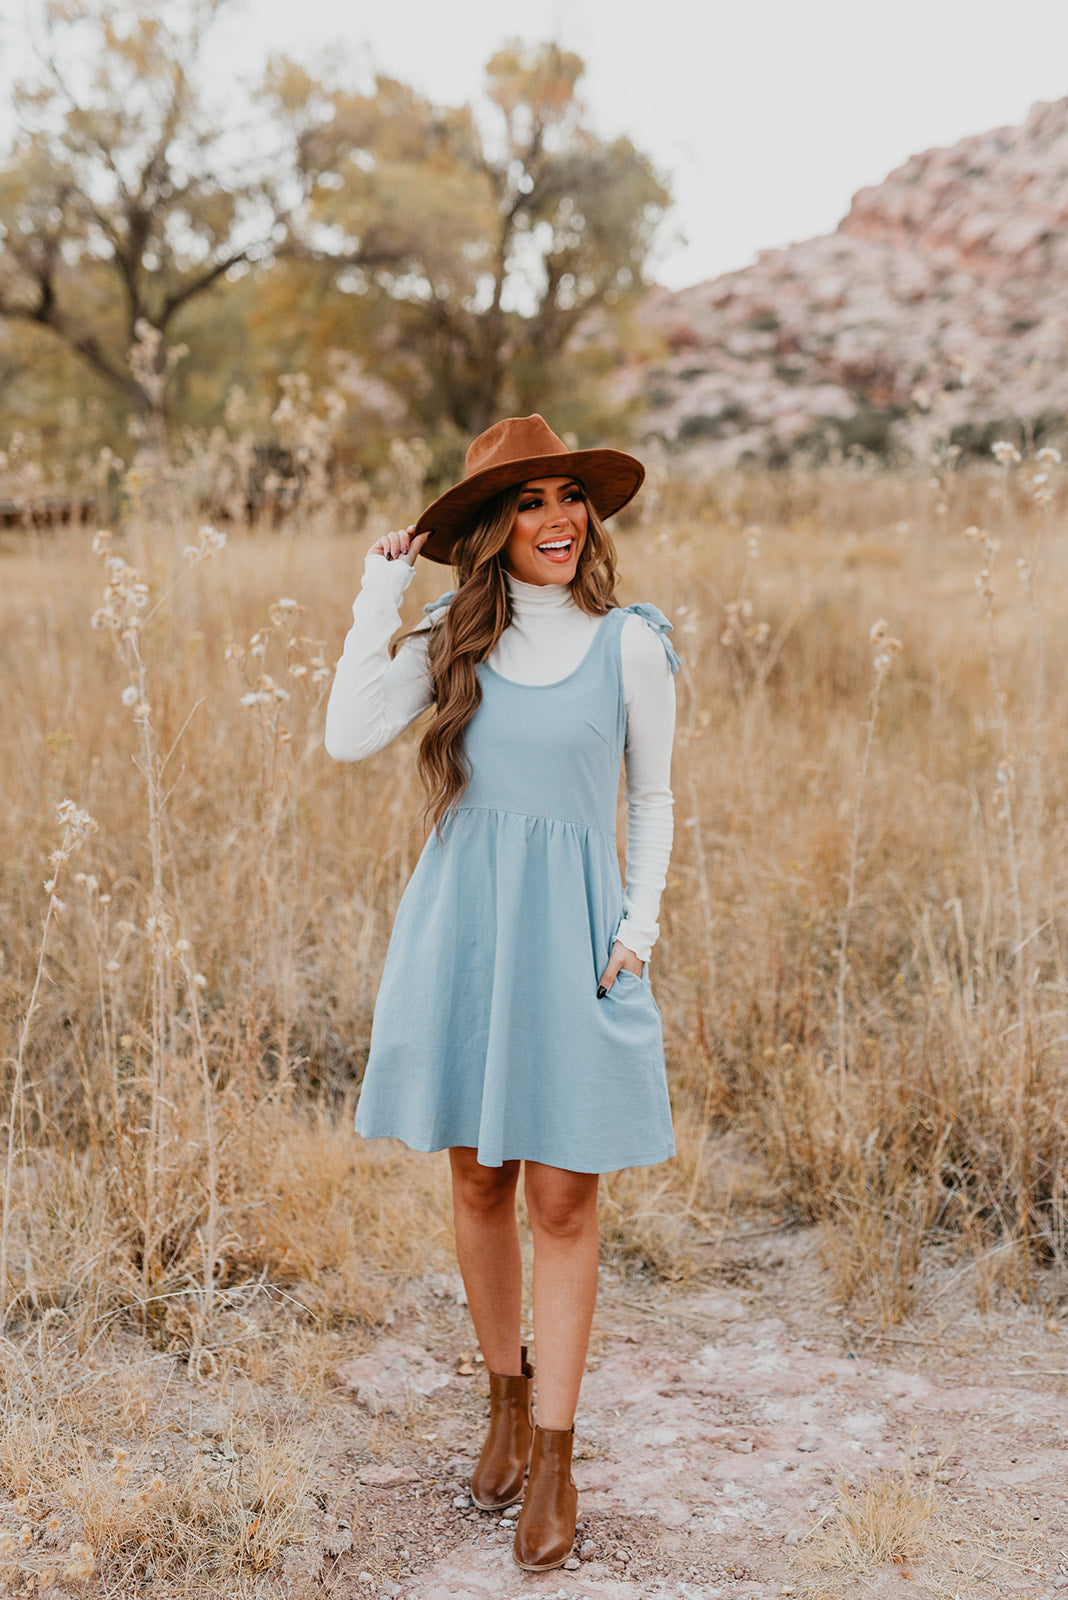 PINK DESERT TIE STRAP MEADOW DRESS IN CHAMBRAY